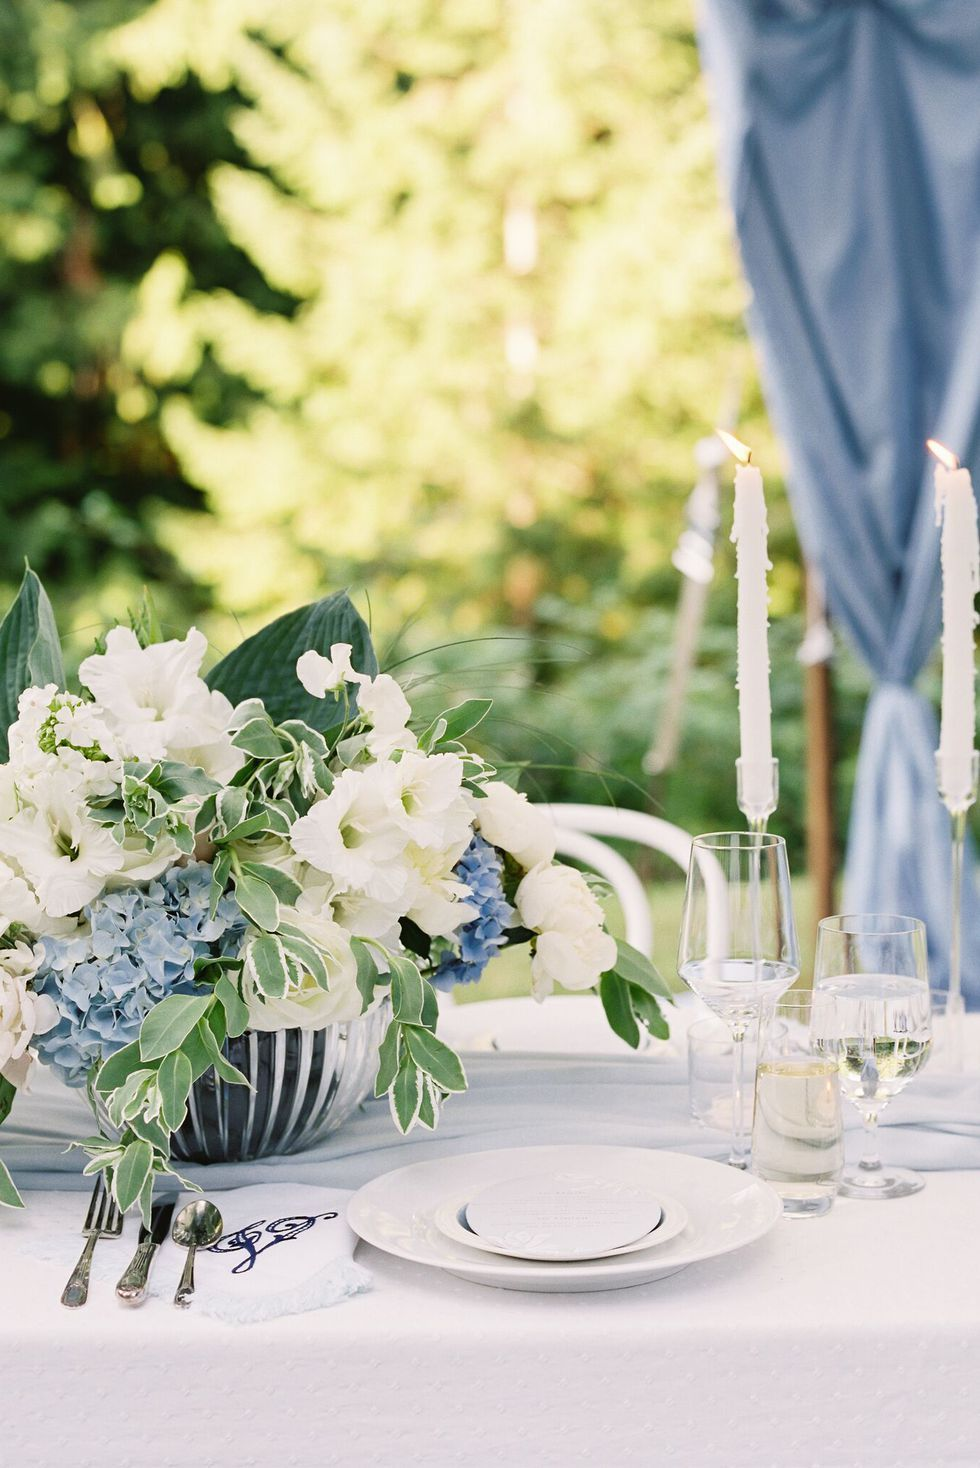 20 Summer Tablescape Ideas For An Outdoor Party Elegant Table Decor